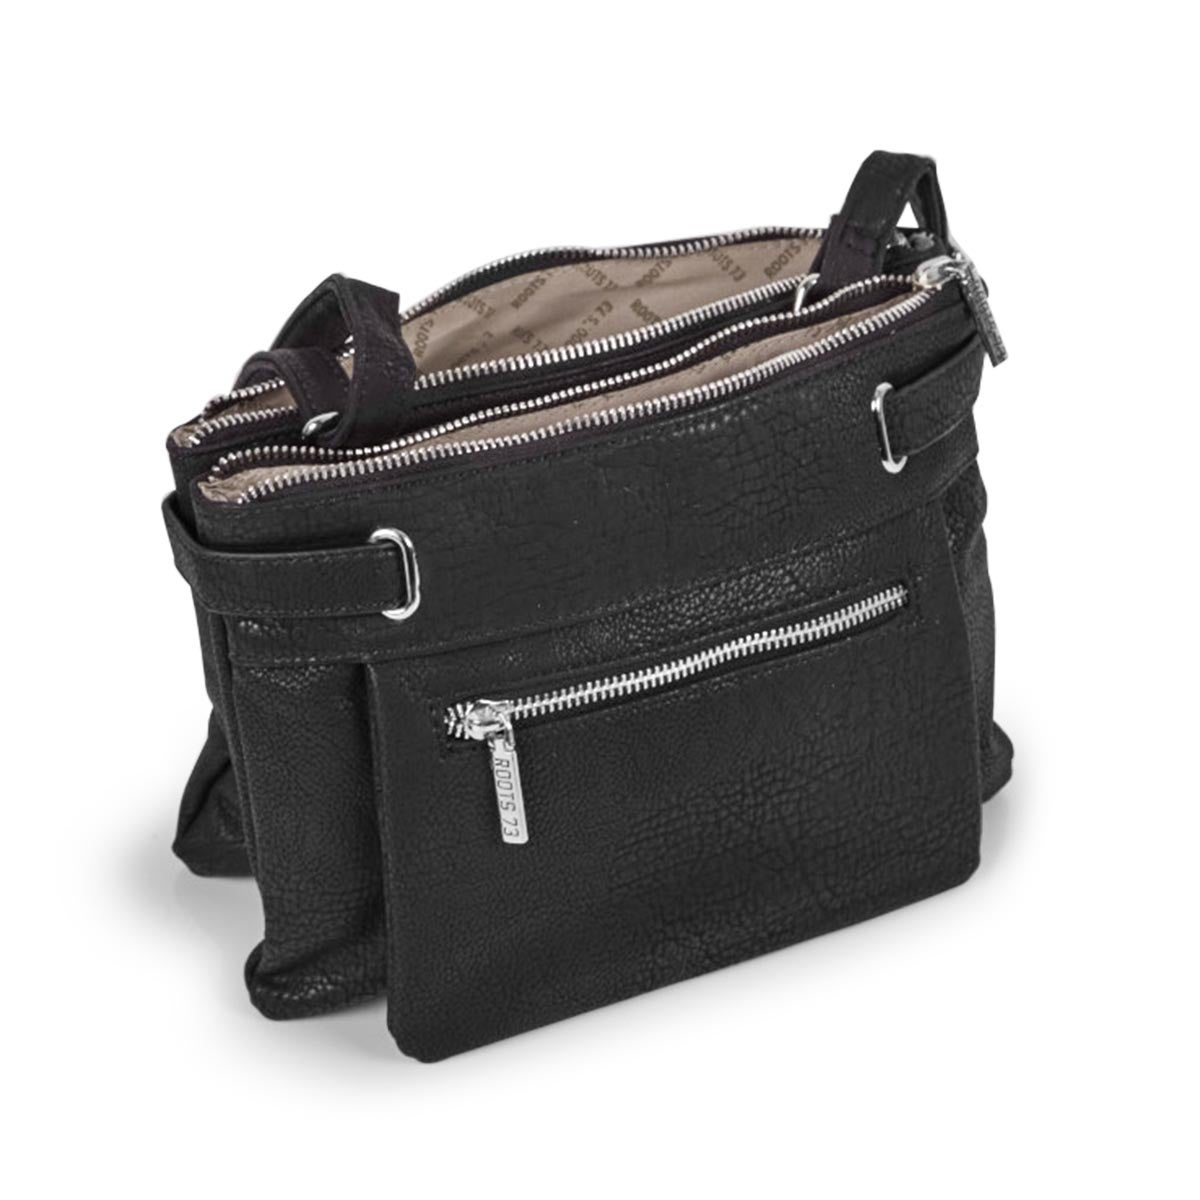 Lds black 2 compartment crossbody